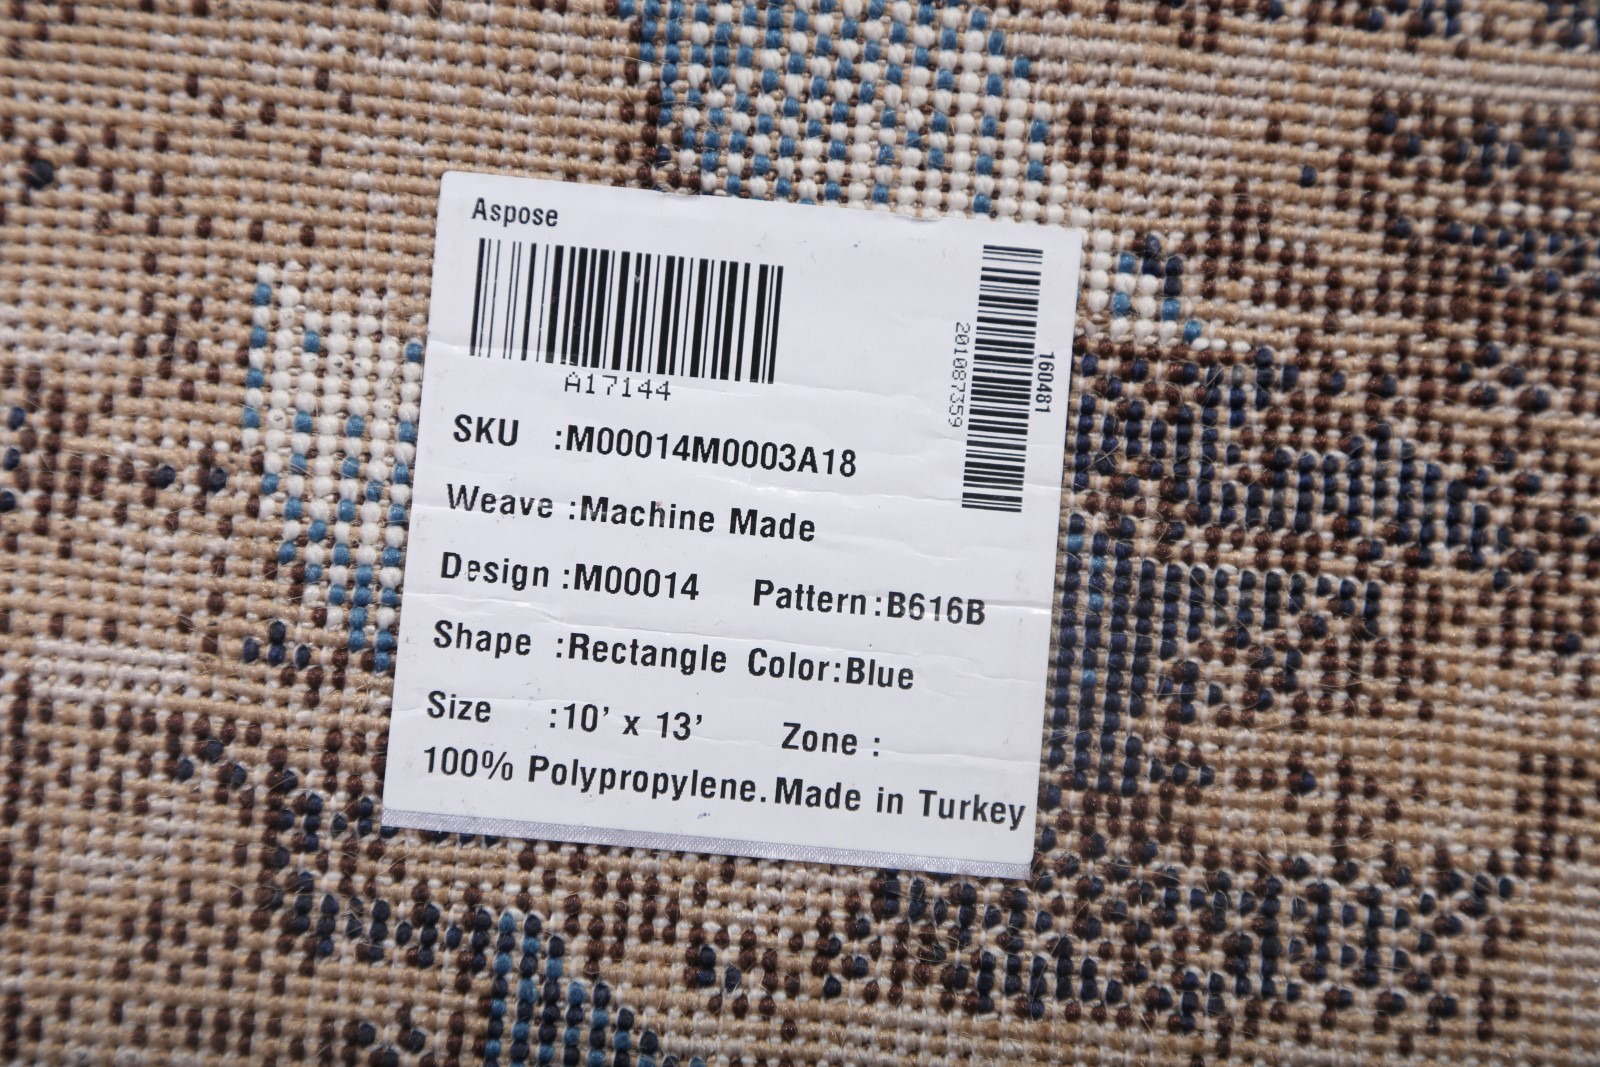 Rug tag indicating country of origin and weave.